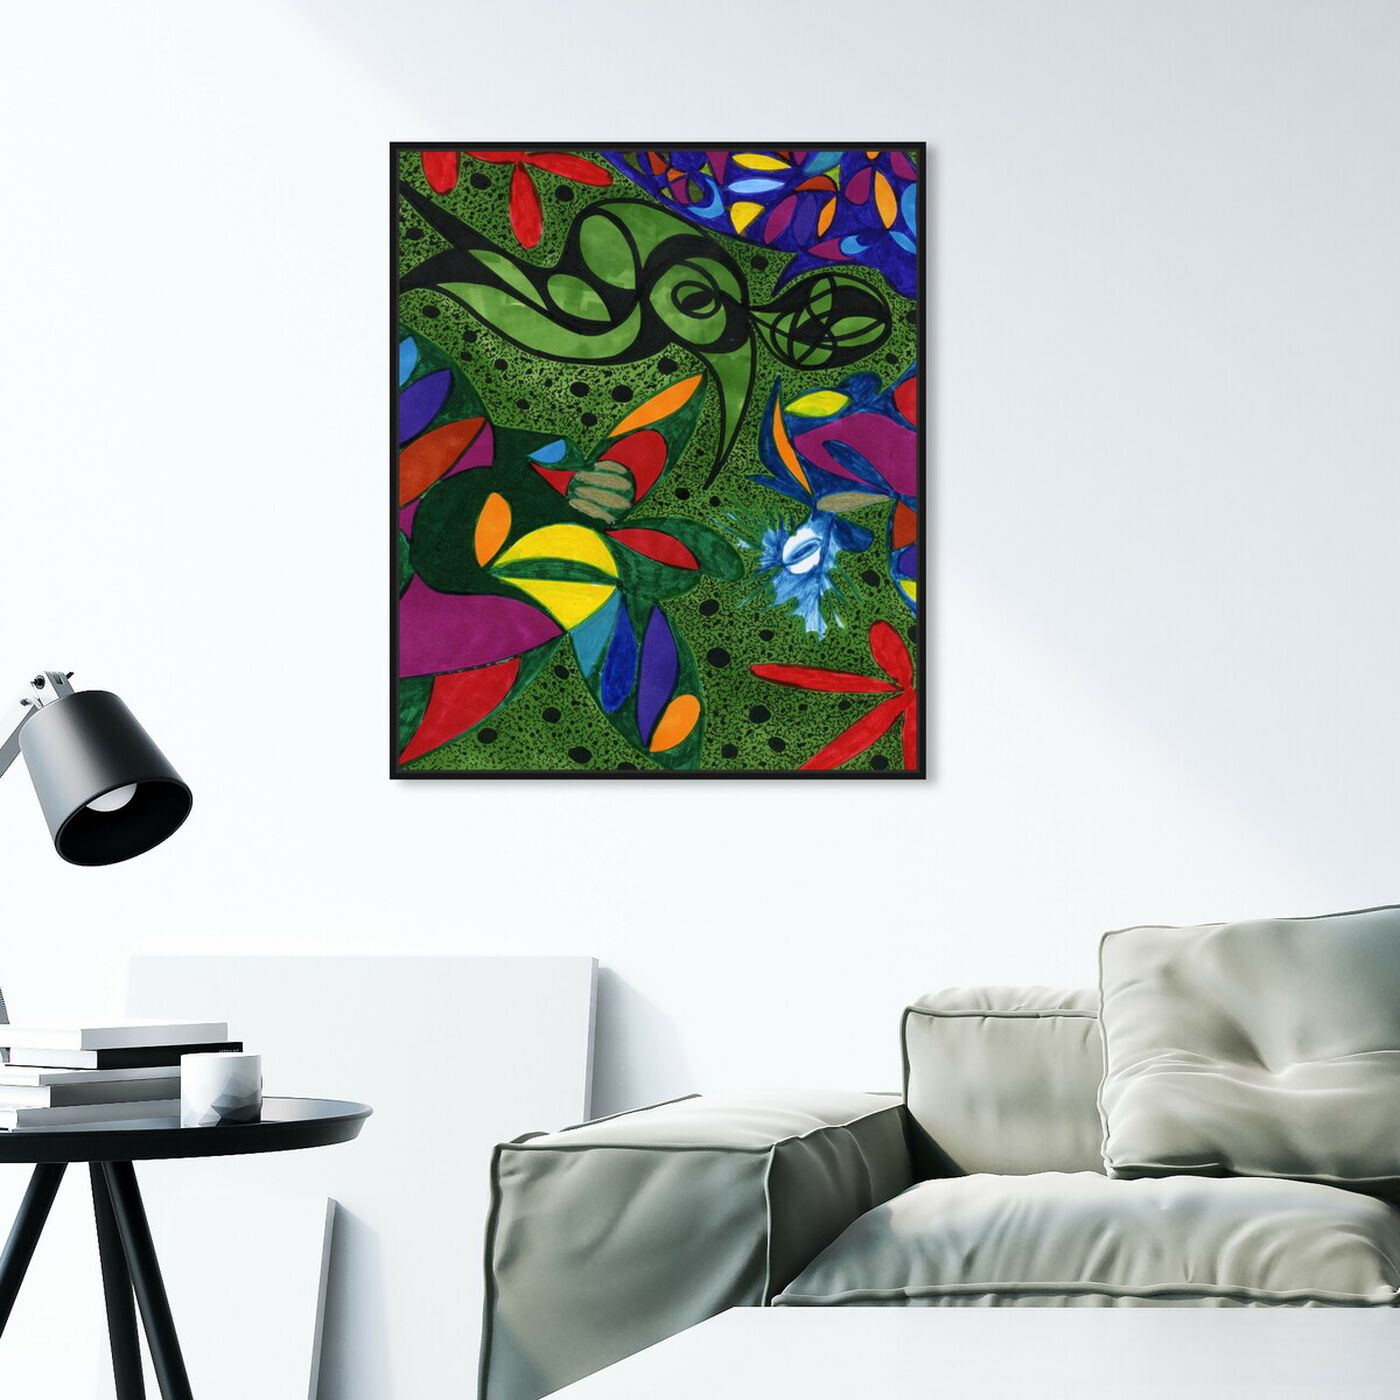 Hanging view of Beneath The Mangroves featuring abstract and shapes art.